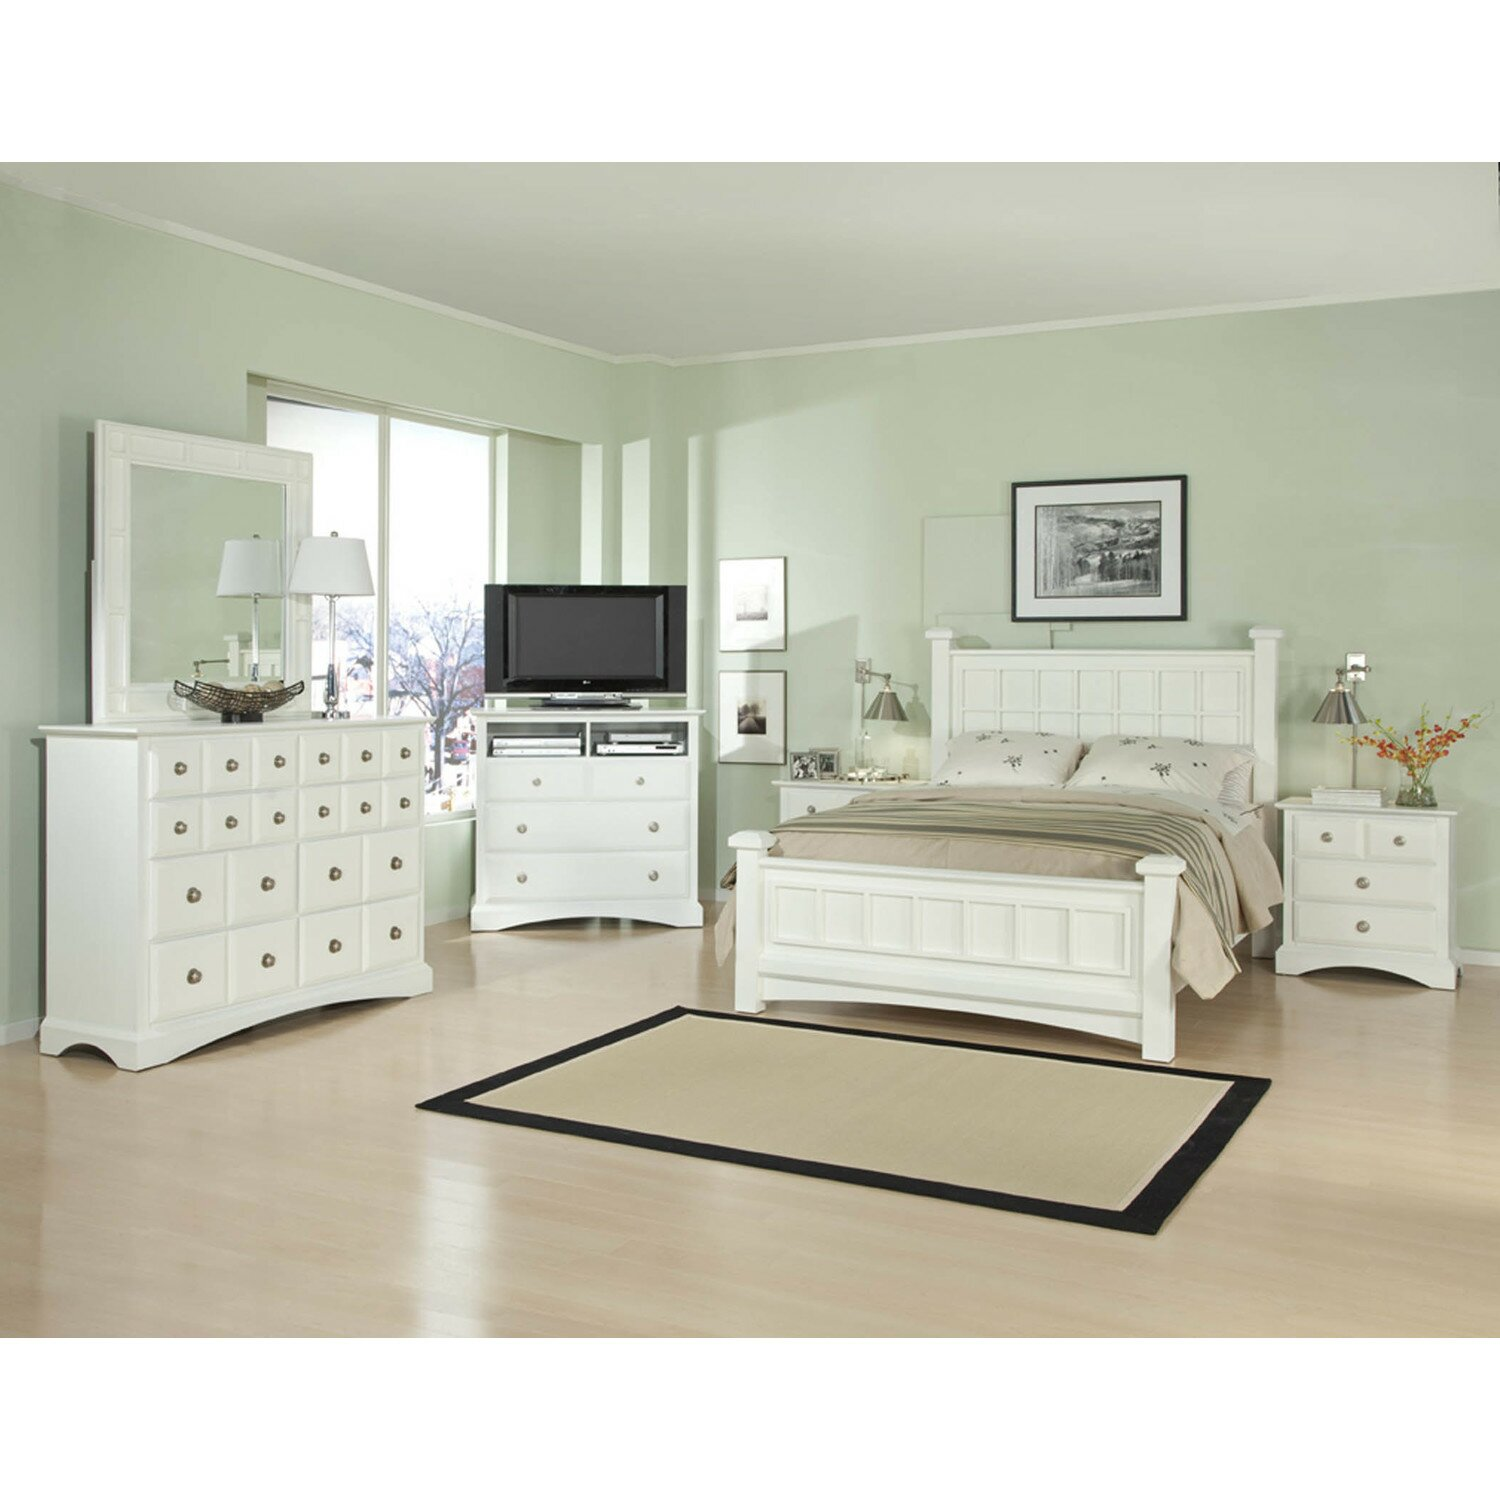 Craigslist Bedroom Sets | Chairs on Craigslist | Craigslist Desk